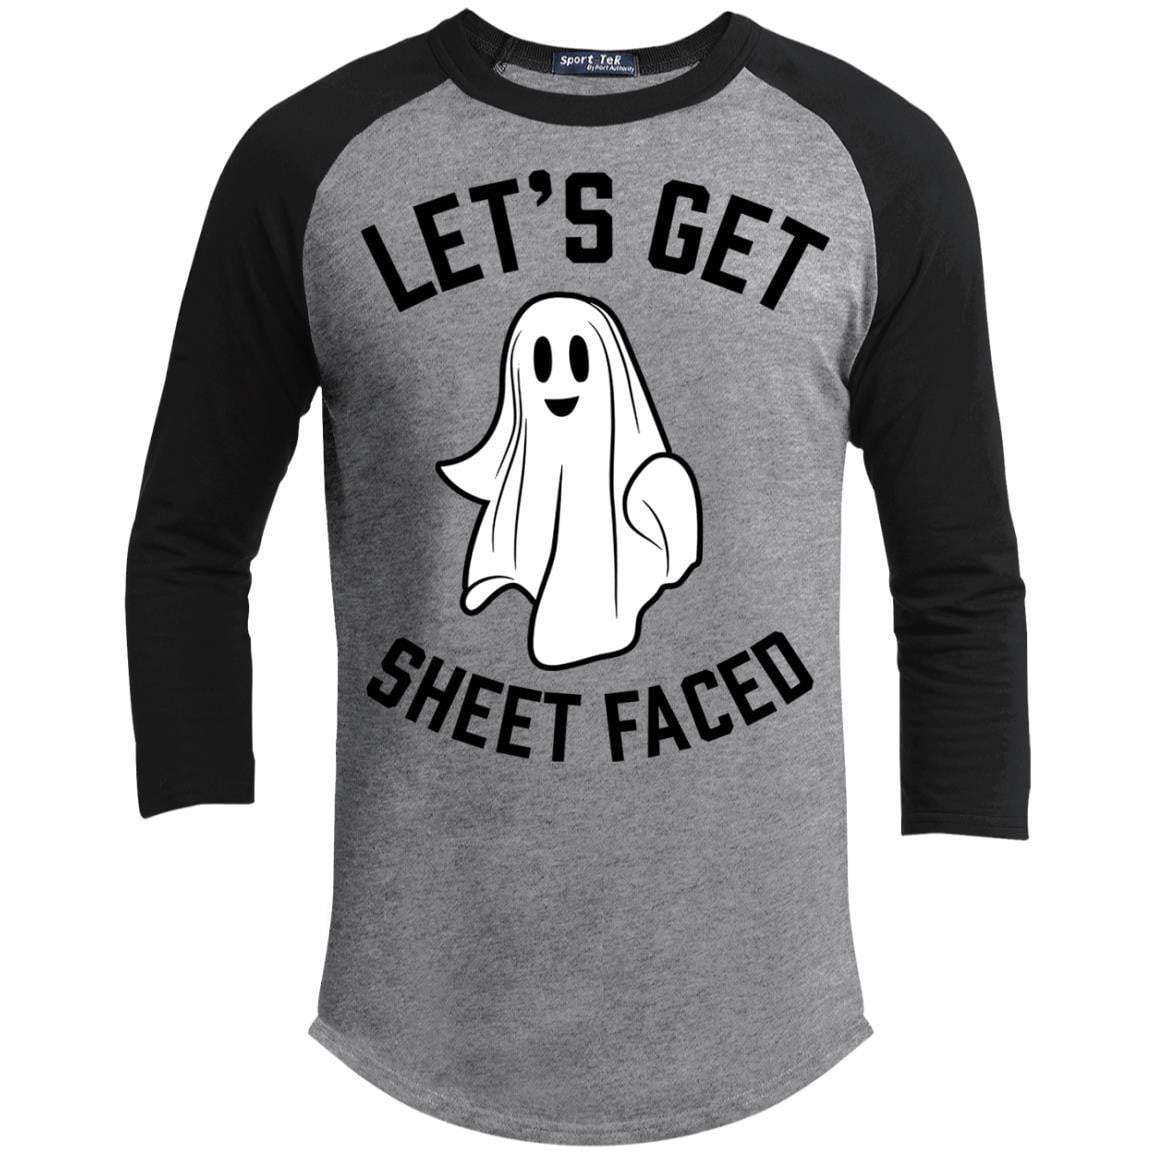 LET'S GET SHEET FACED Unisex 3/4 Sleeve Raglan